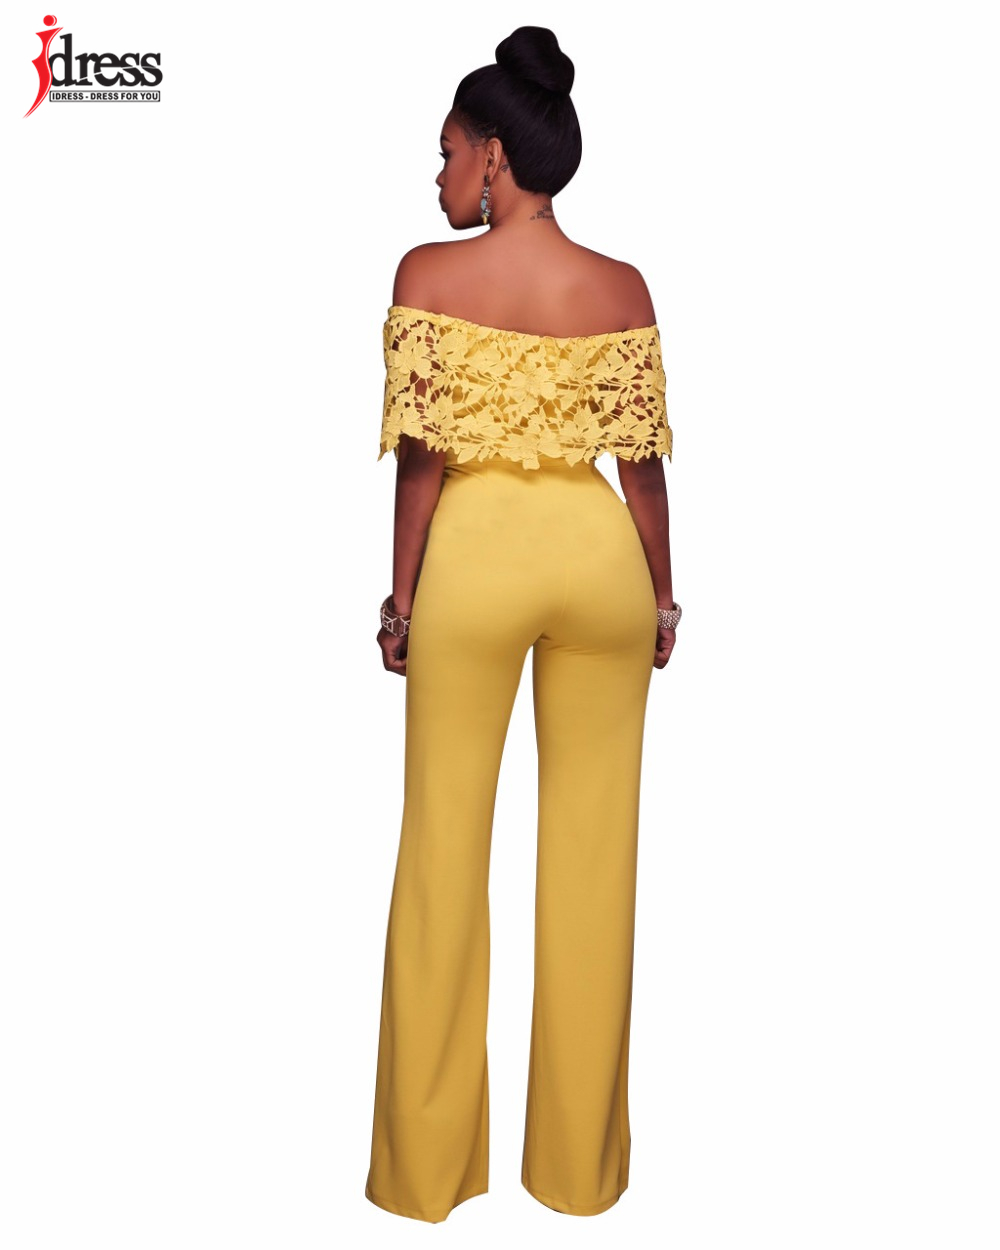 IDress Lace Crochet Rompers Women Jumpsuit Sexy Strapless Bodycon Jumpsuit Wide Leg Black White Yellow Long Pant Romper Overalls (2)